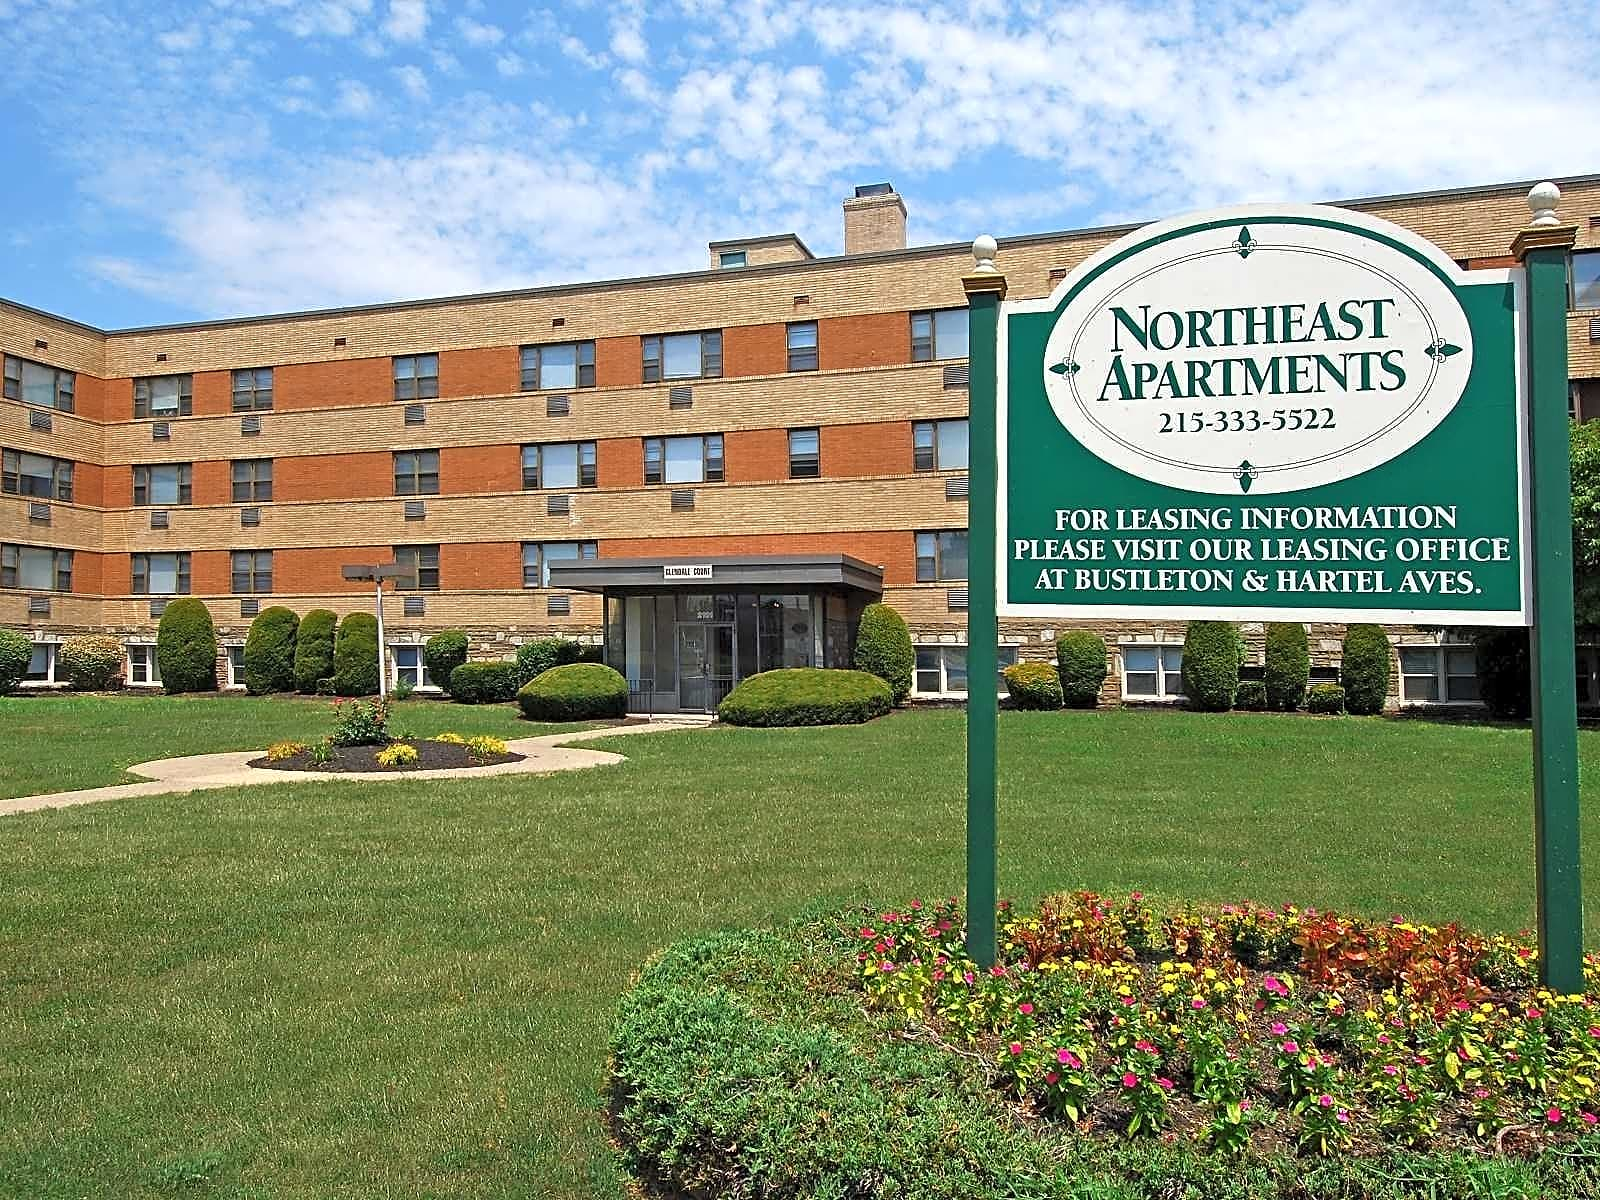 Northeast Apartments - Philadelphia, PA 19152